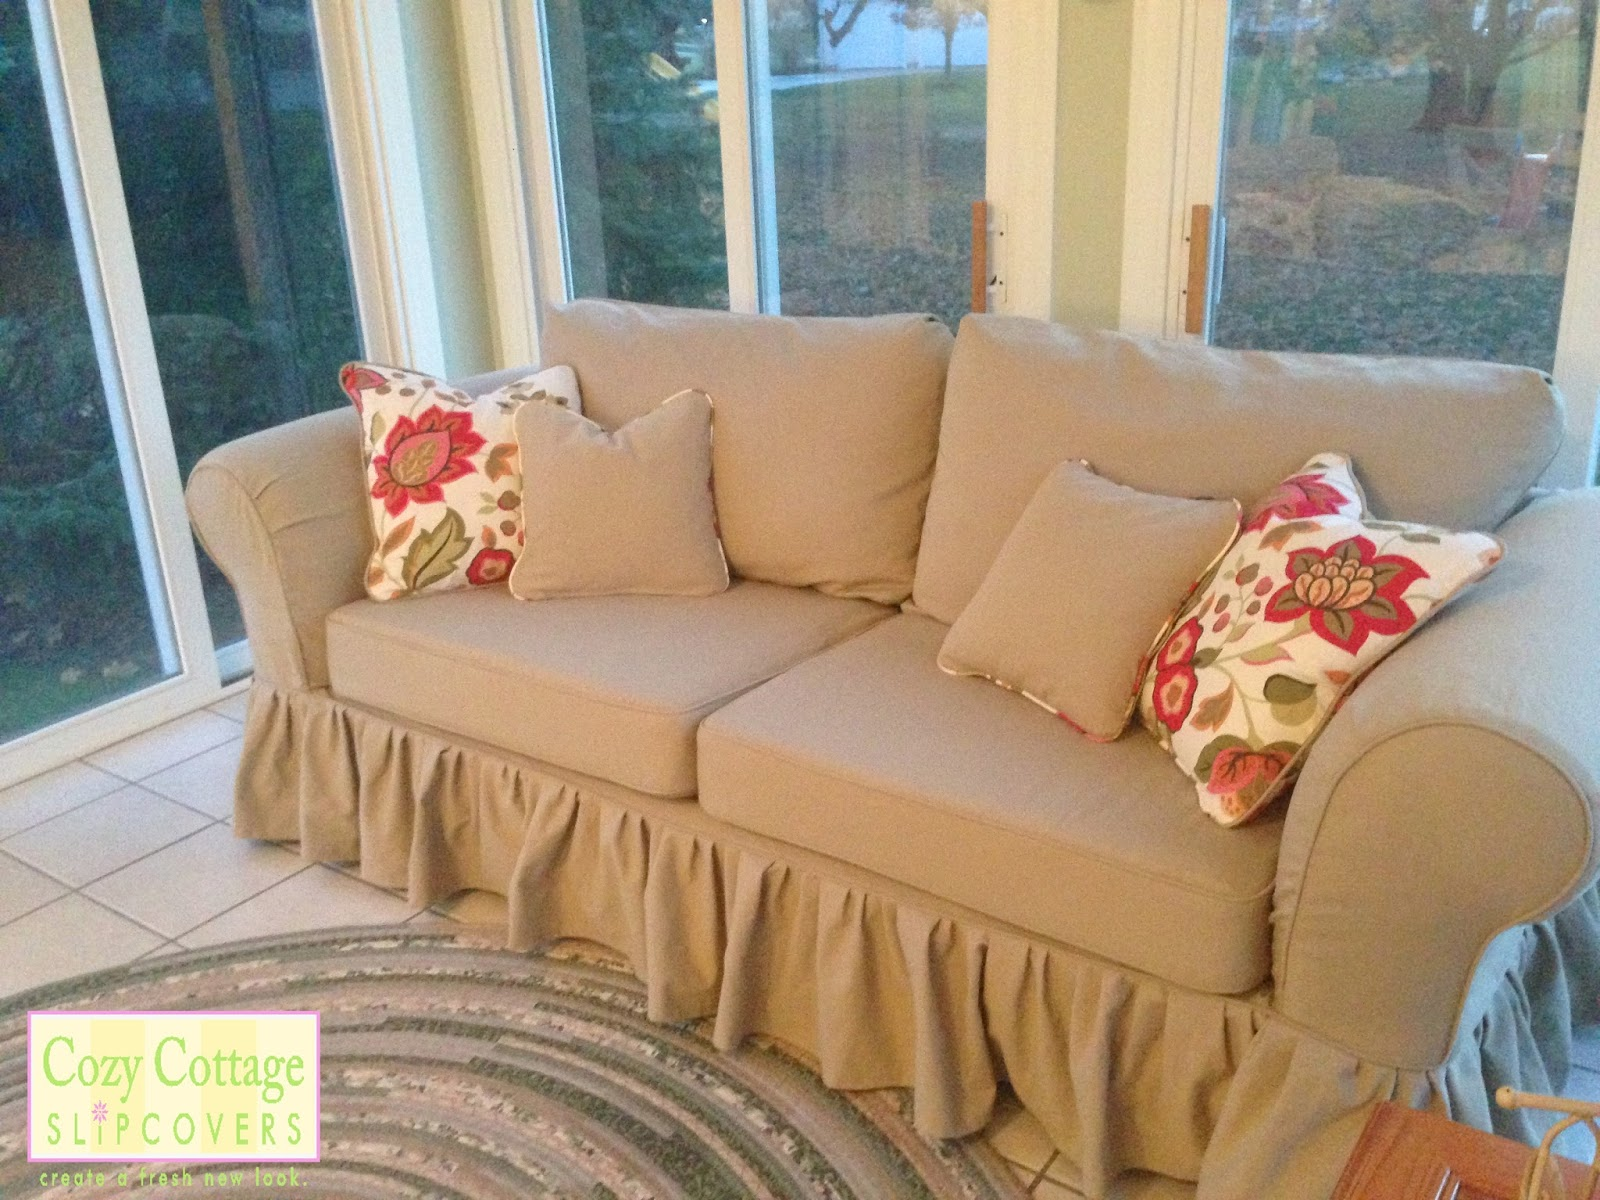 Ruffled Sofa Slipcover Cozy Cottage Slipcovers: Classic Cotton and Ruffles